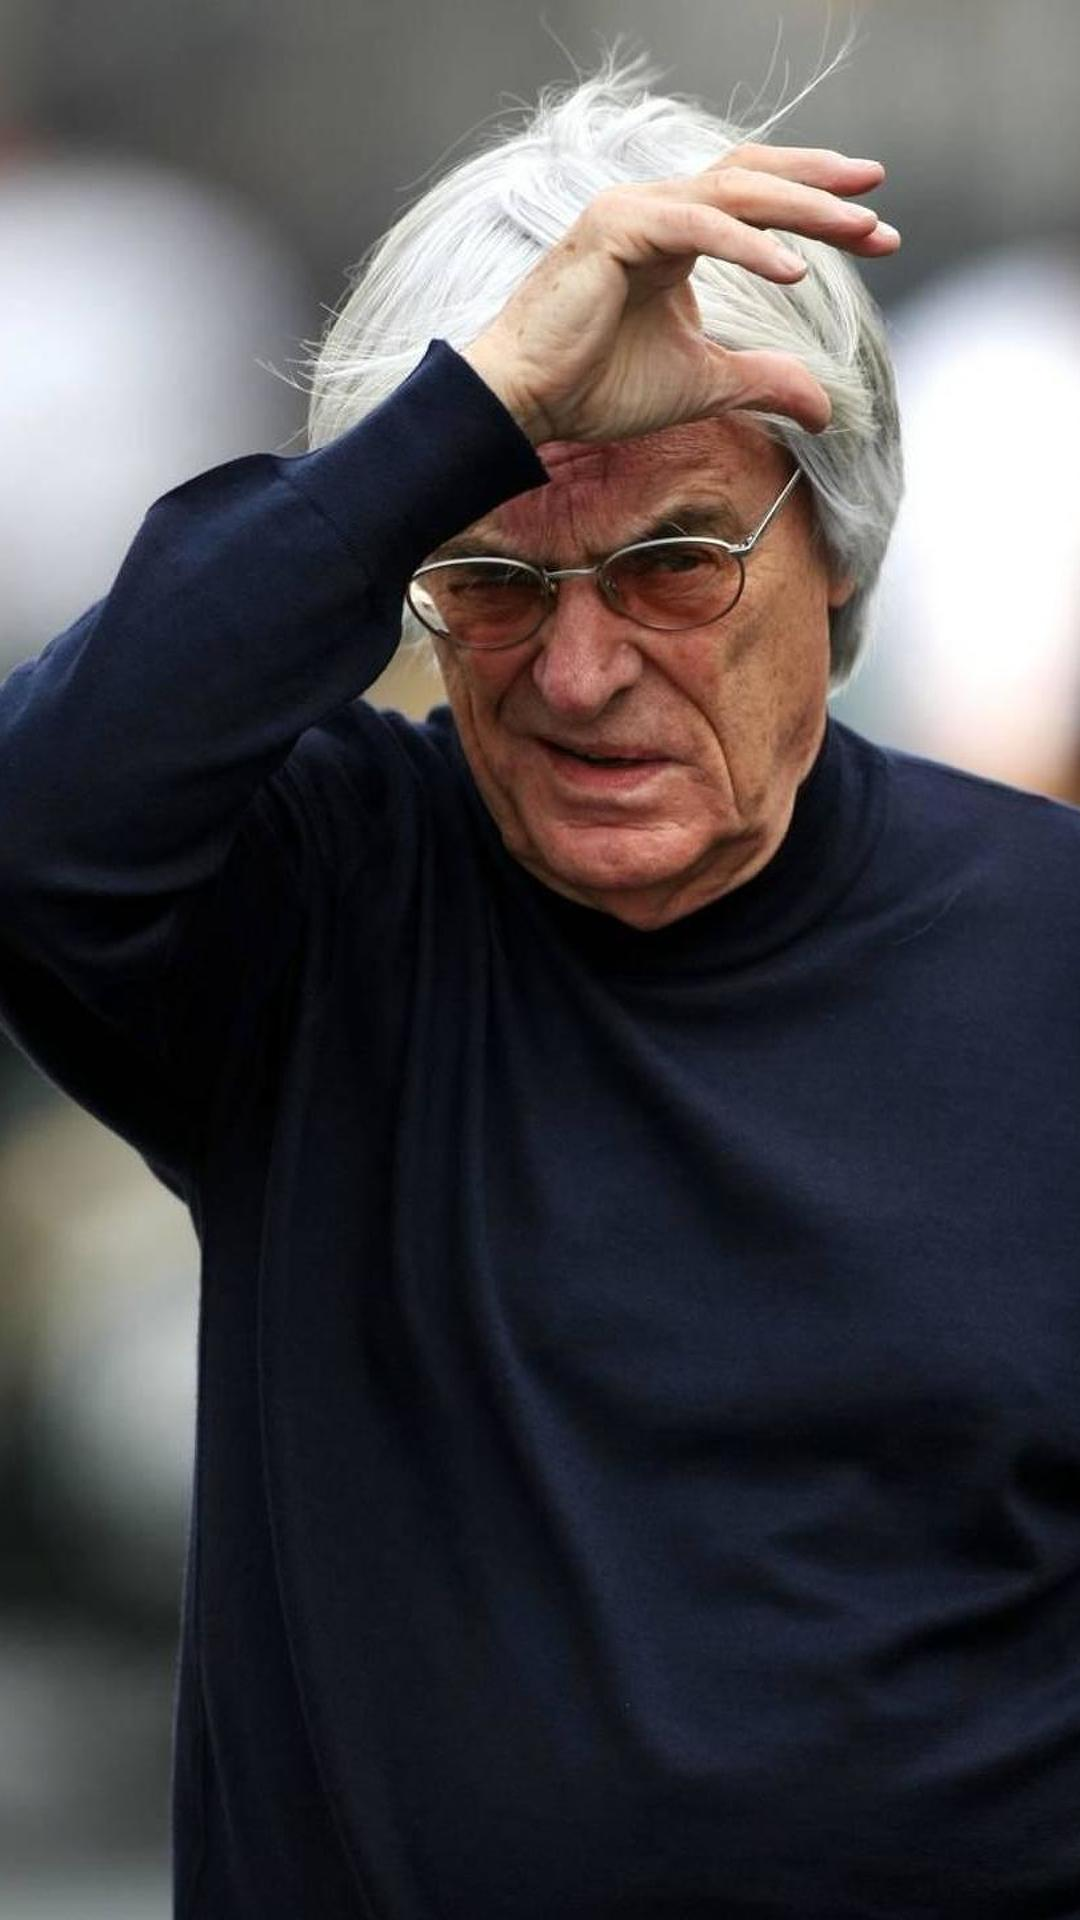 False reports - Bernie Ecclestone robbed of $300,000 in London attack